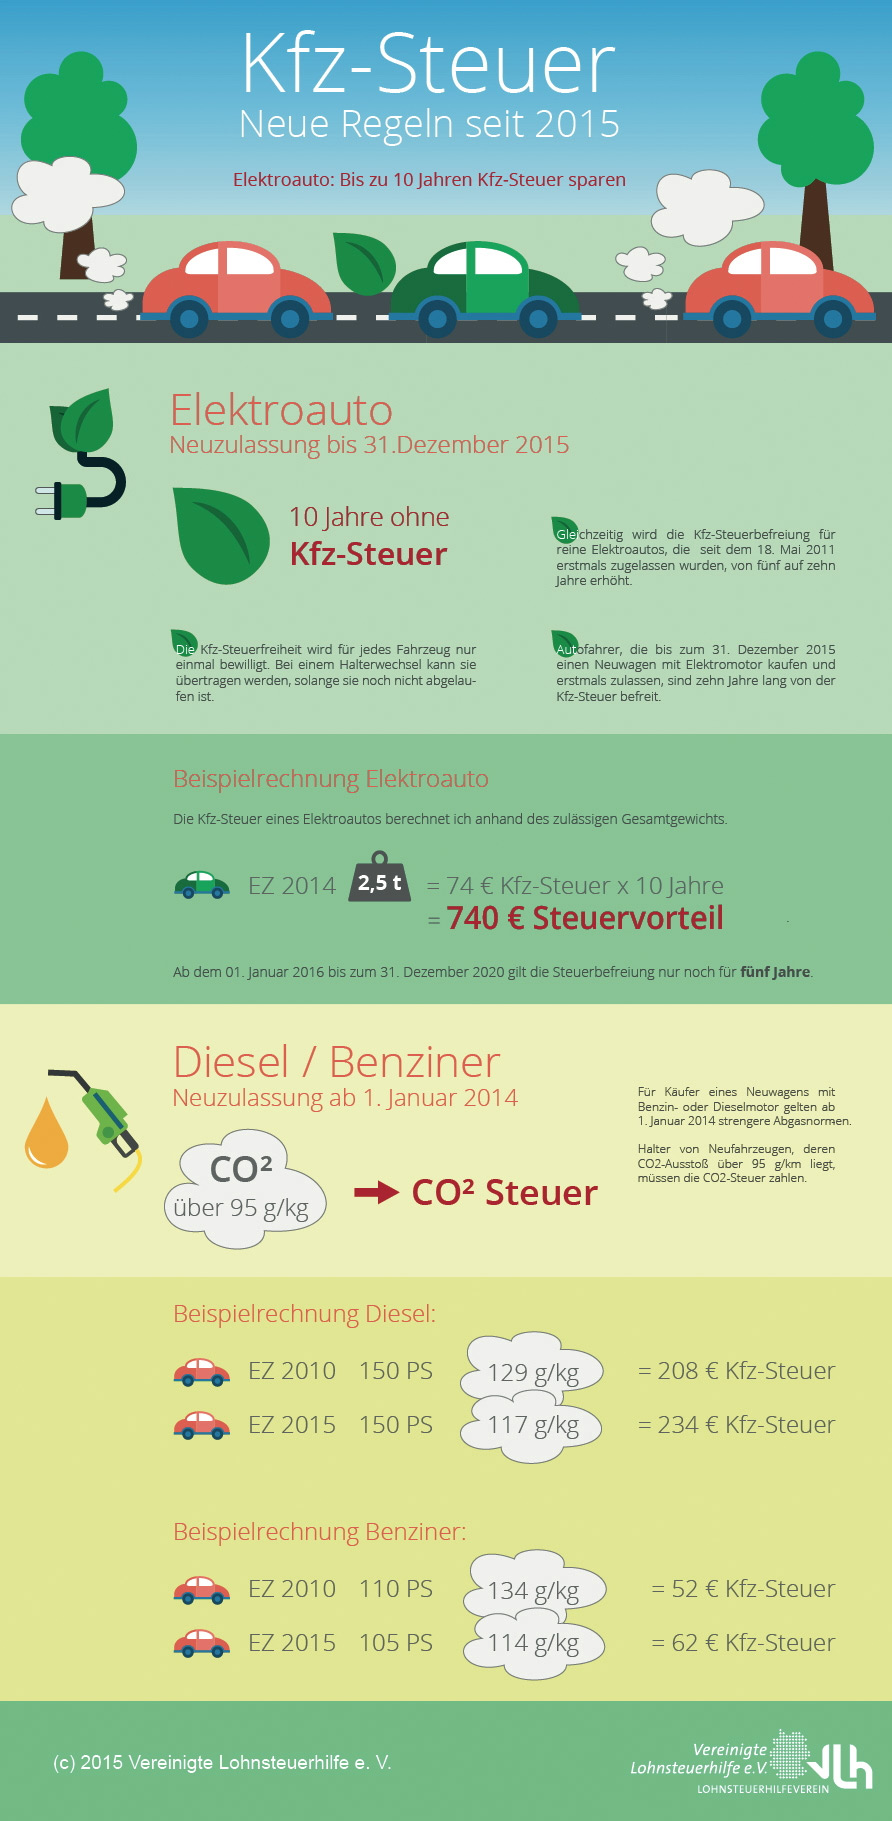 kfz steuer regeln der co2 steuer infografik zu den. Black Bedroom Furniture Sets. Home Design Ideas